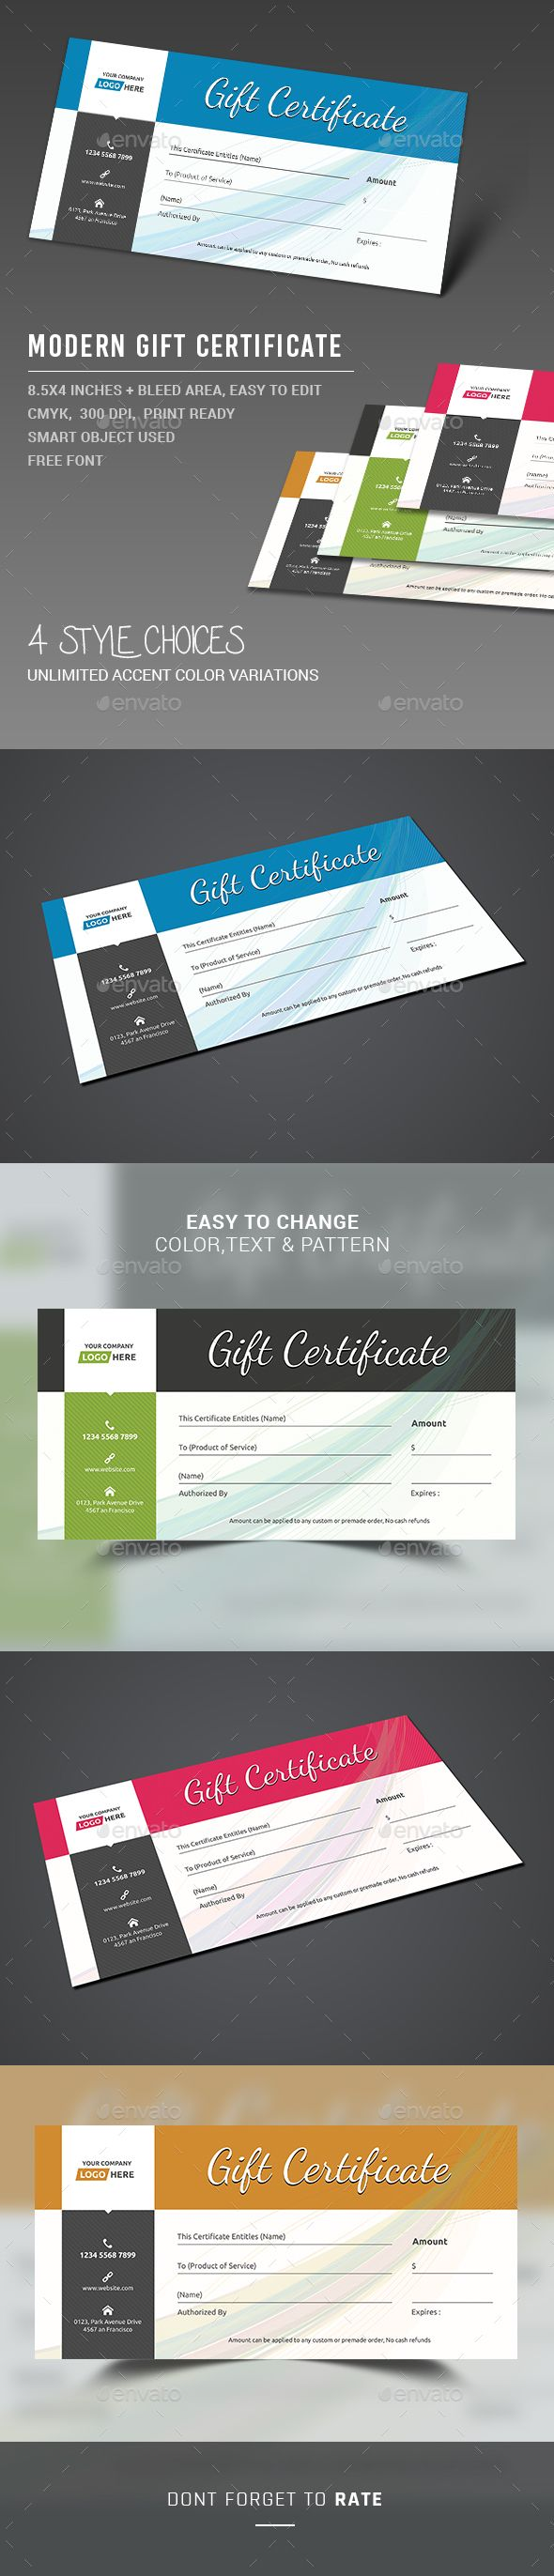 3bb4320616ba778af0d3bcb6aaf68bcdg gift certificate template psd download here httpgraphicriver yelopaper Gallery